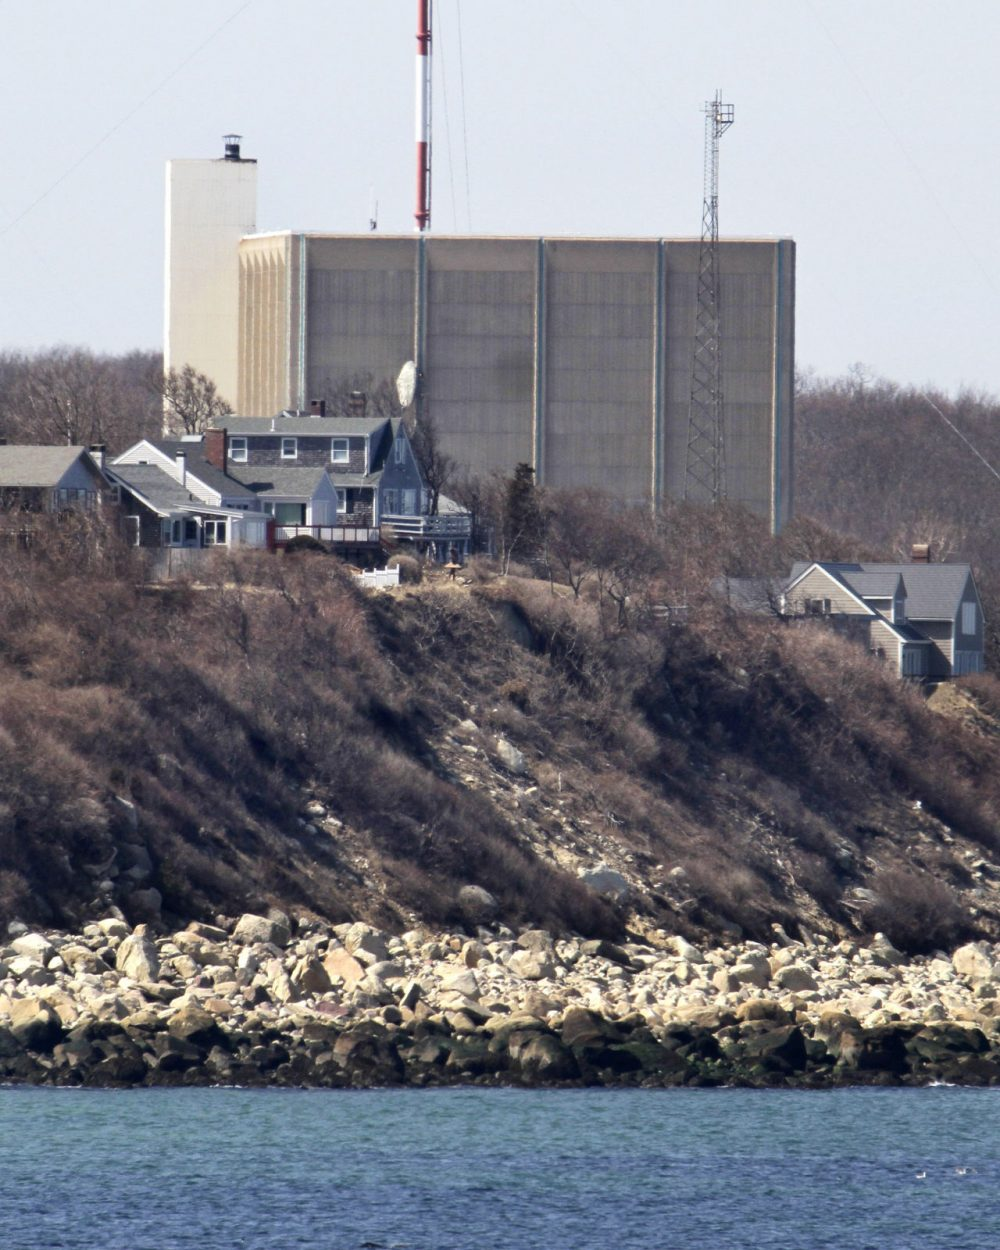 A tower at Pilgrim Nuclear Power Station in Plymouth is seen near the coast of Cape Cod Bay in 2011. (Steven Senne/AP)